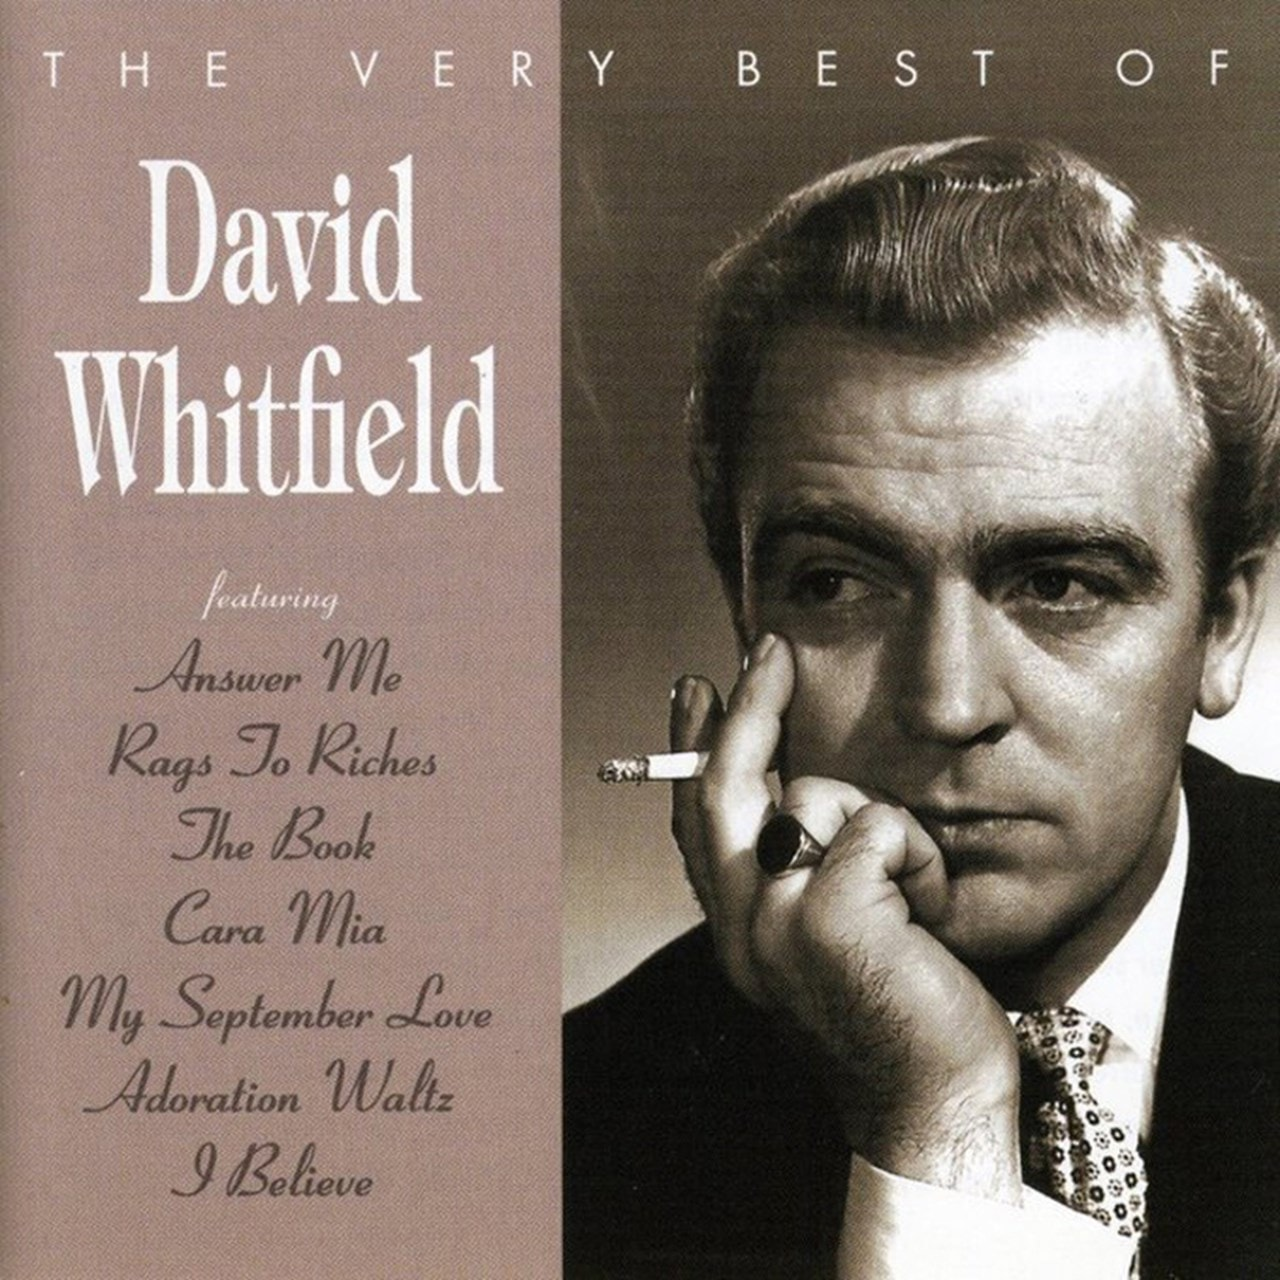 The Very Best Of David Whitfield - 1